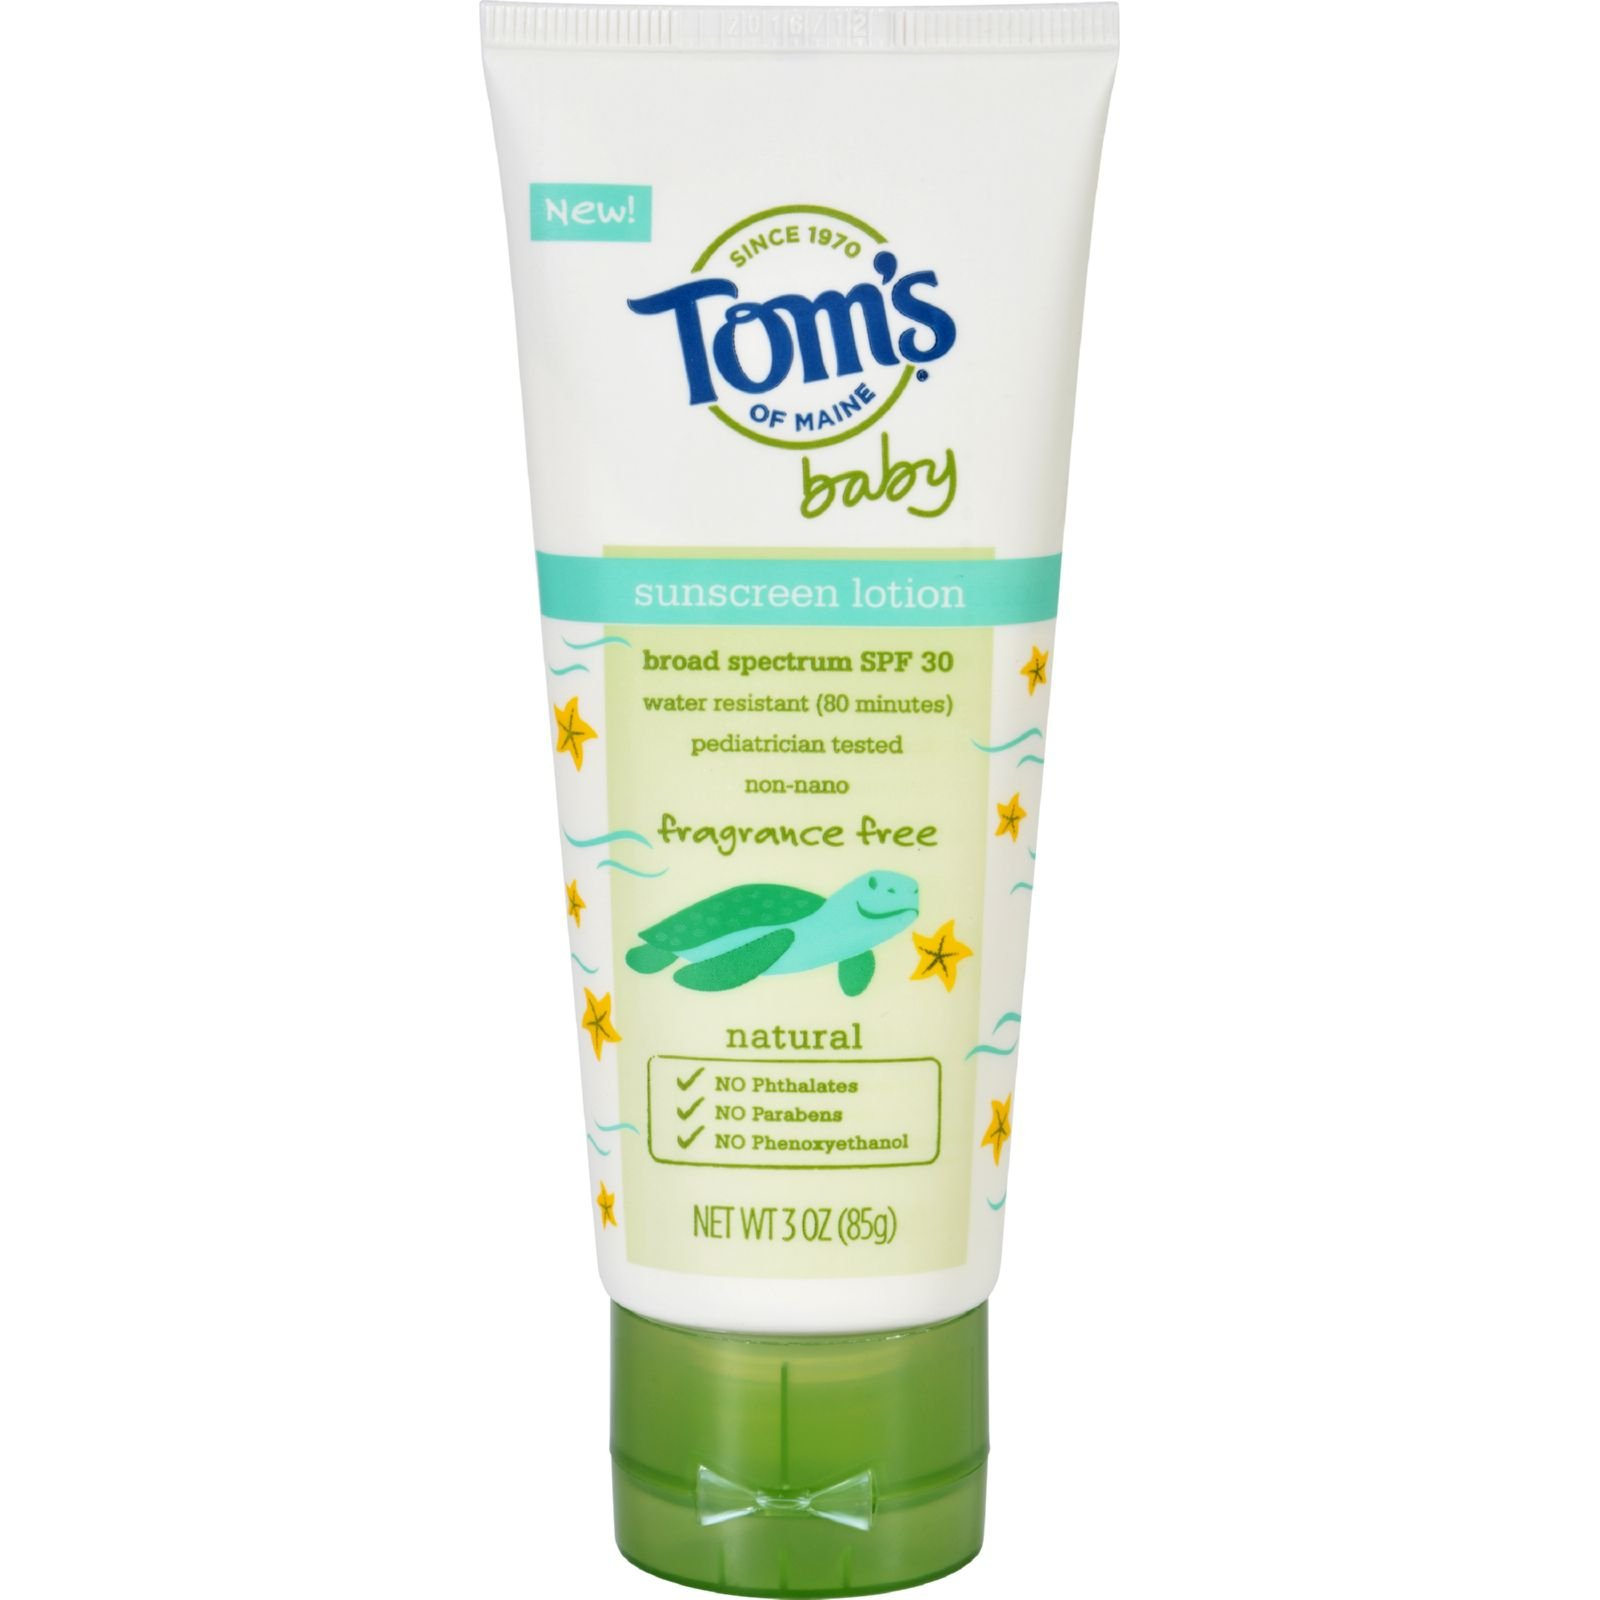 Toms of Maine Sunscreen - Baby - Fragrance Free - 3 oz - Case of 6 (Pack of 2) by Tom's of Maine (Image #1)